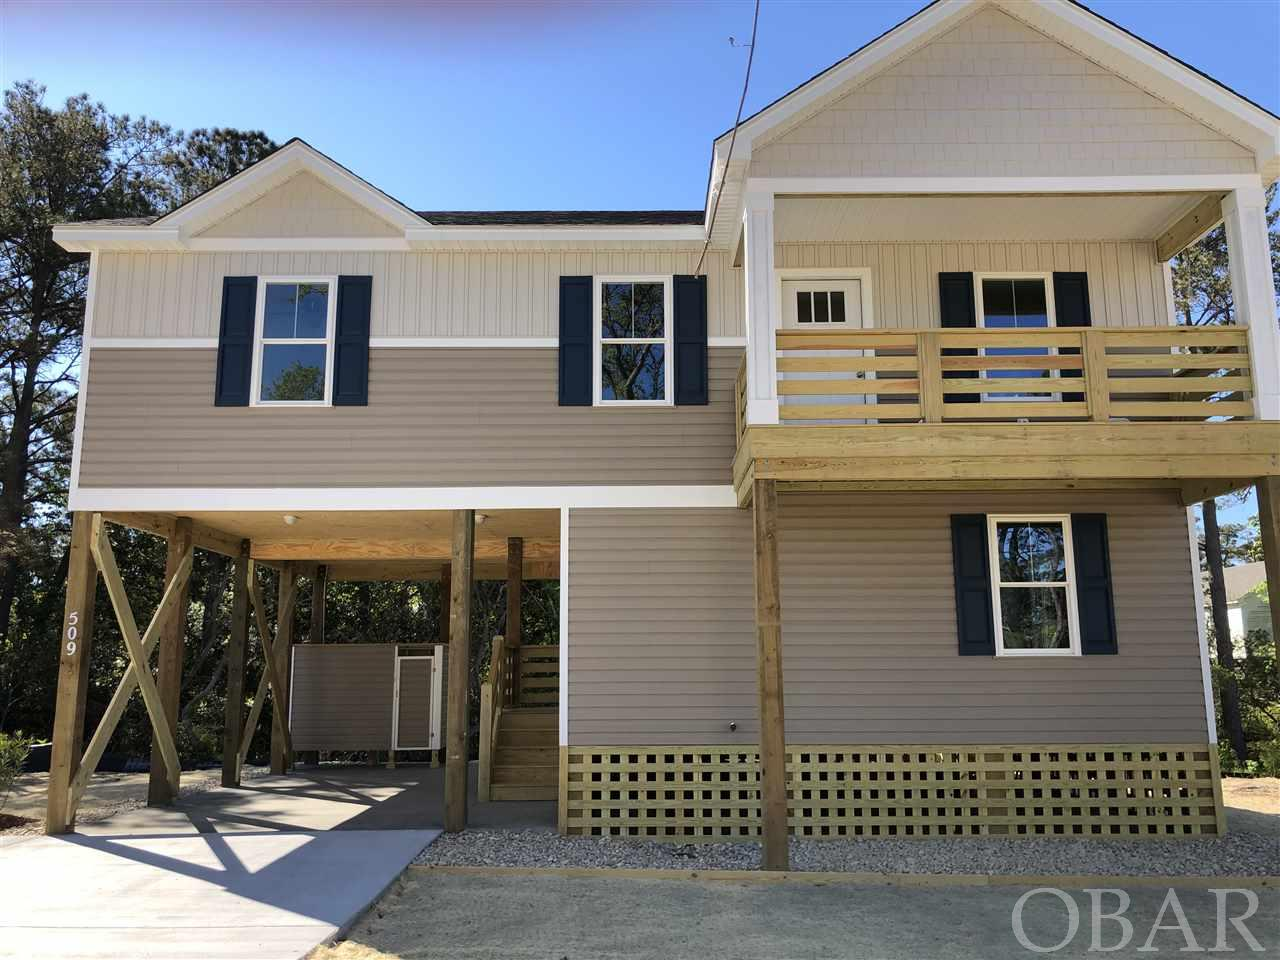 509 Palmetto Street, Kill Devil Hills, NC 27948, 3 Bedrooms Bedrooms, ,3 BathroomsBathrooms,Residential,For sale,Palmetto Street,104986